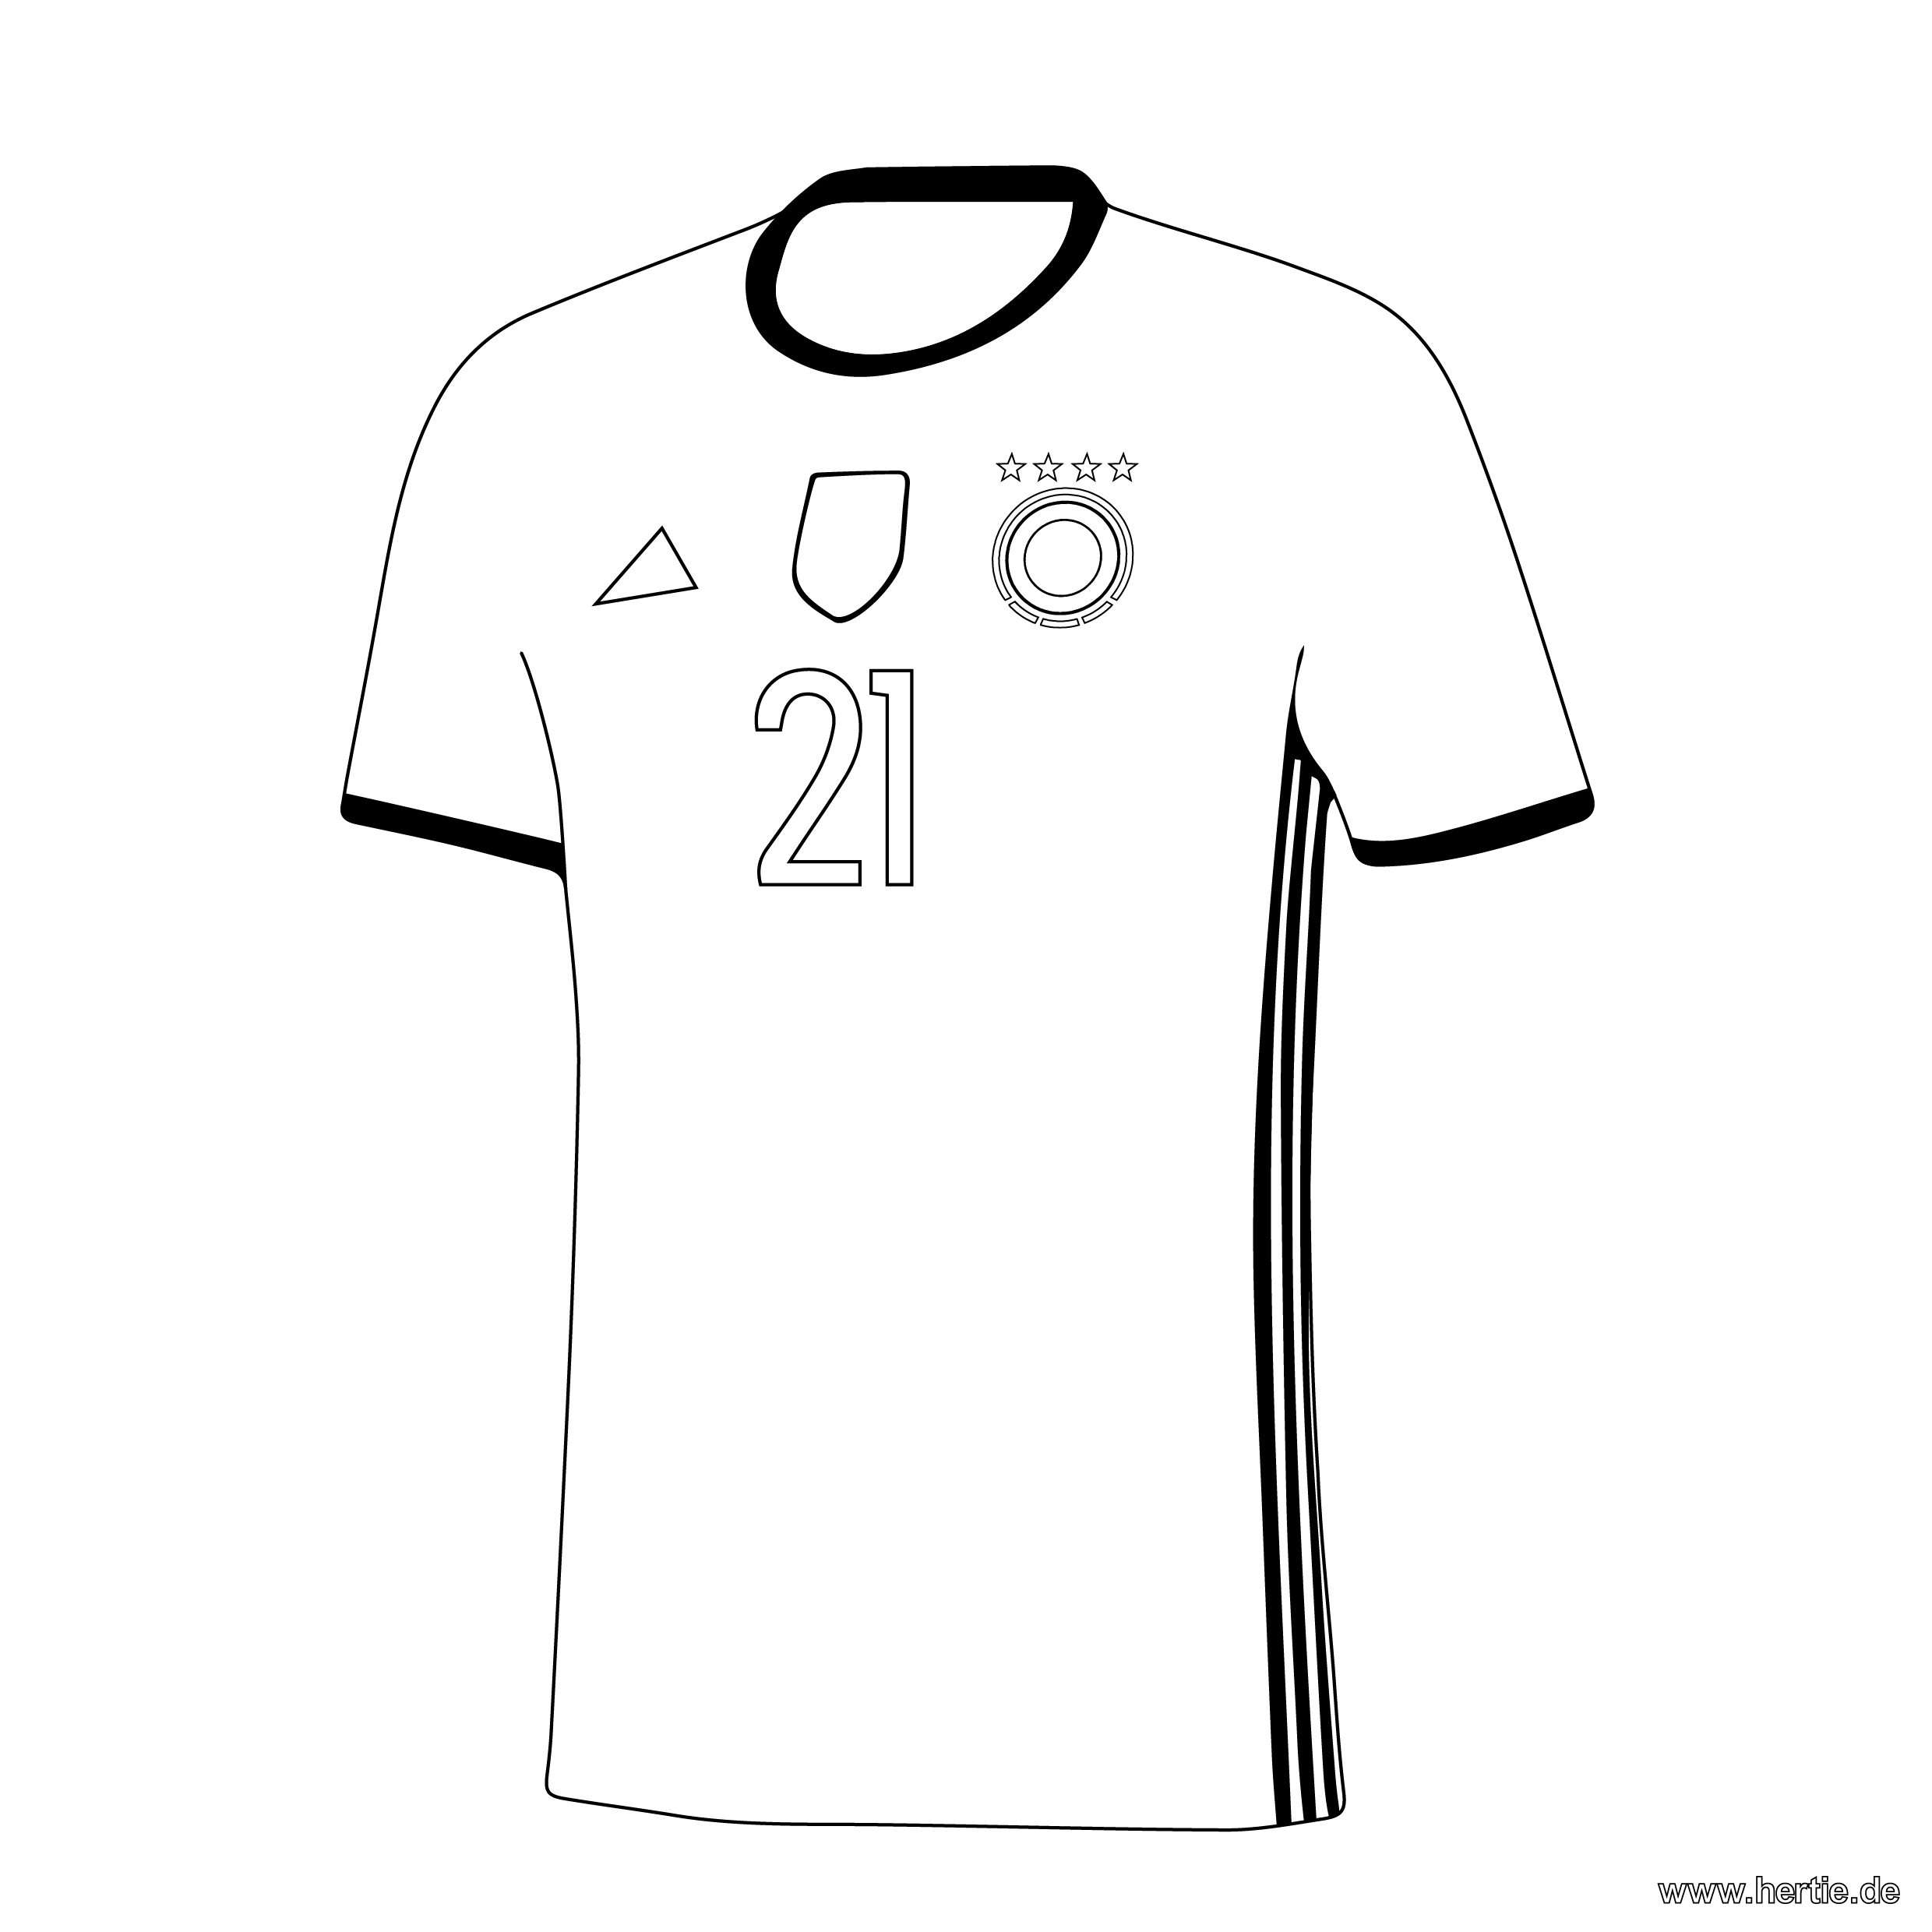 Malvorlagen Fussball T Shirt | My blog